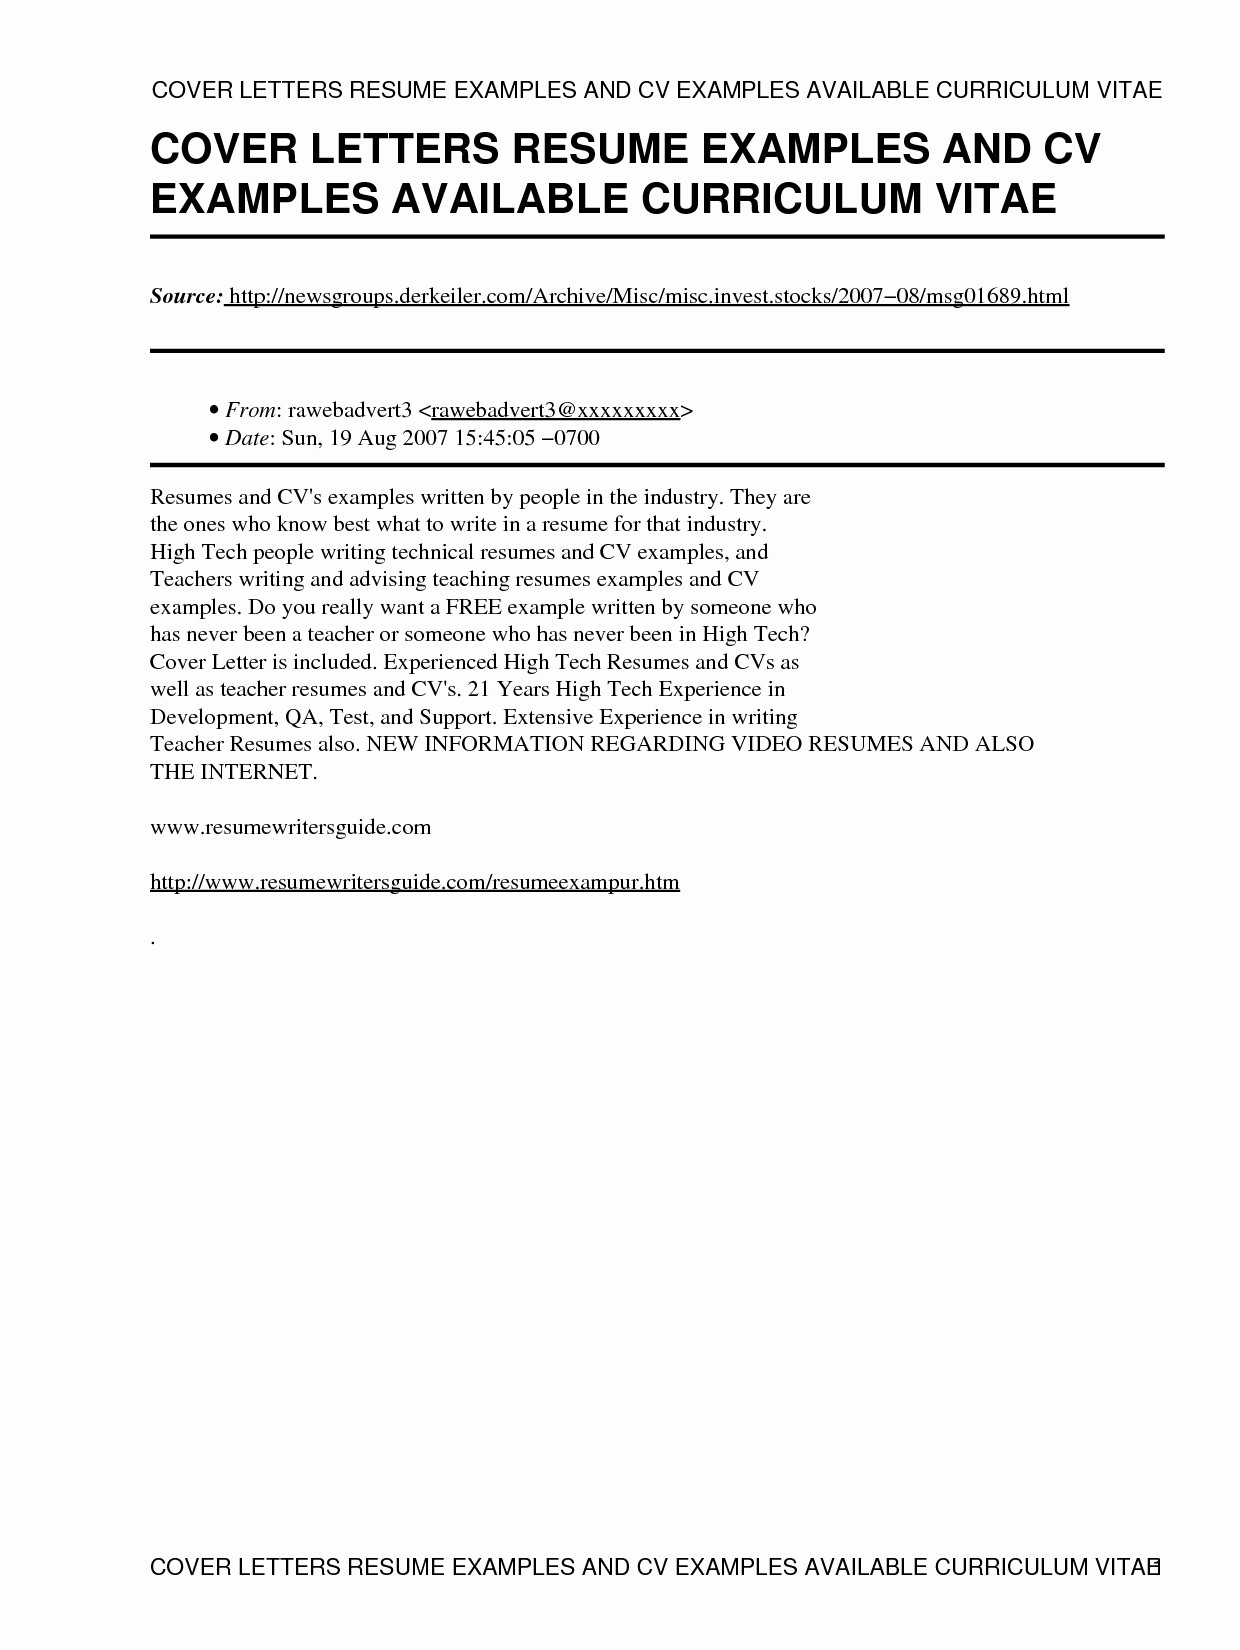 Resume and Cover Letter Template Fresh How to Write A Resume Cover Letter Sample